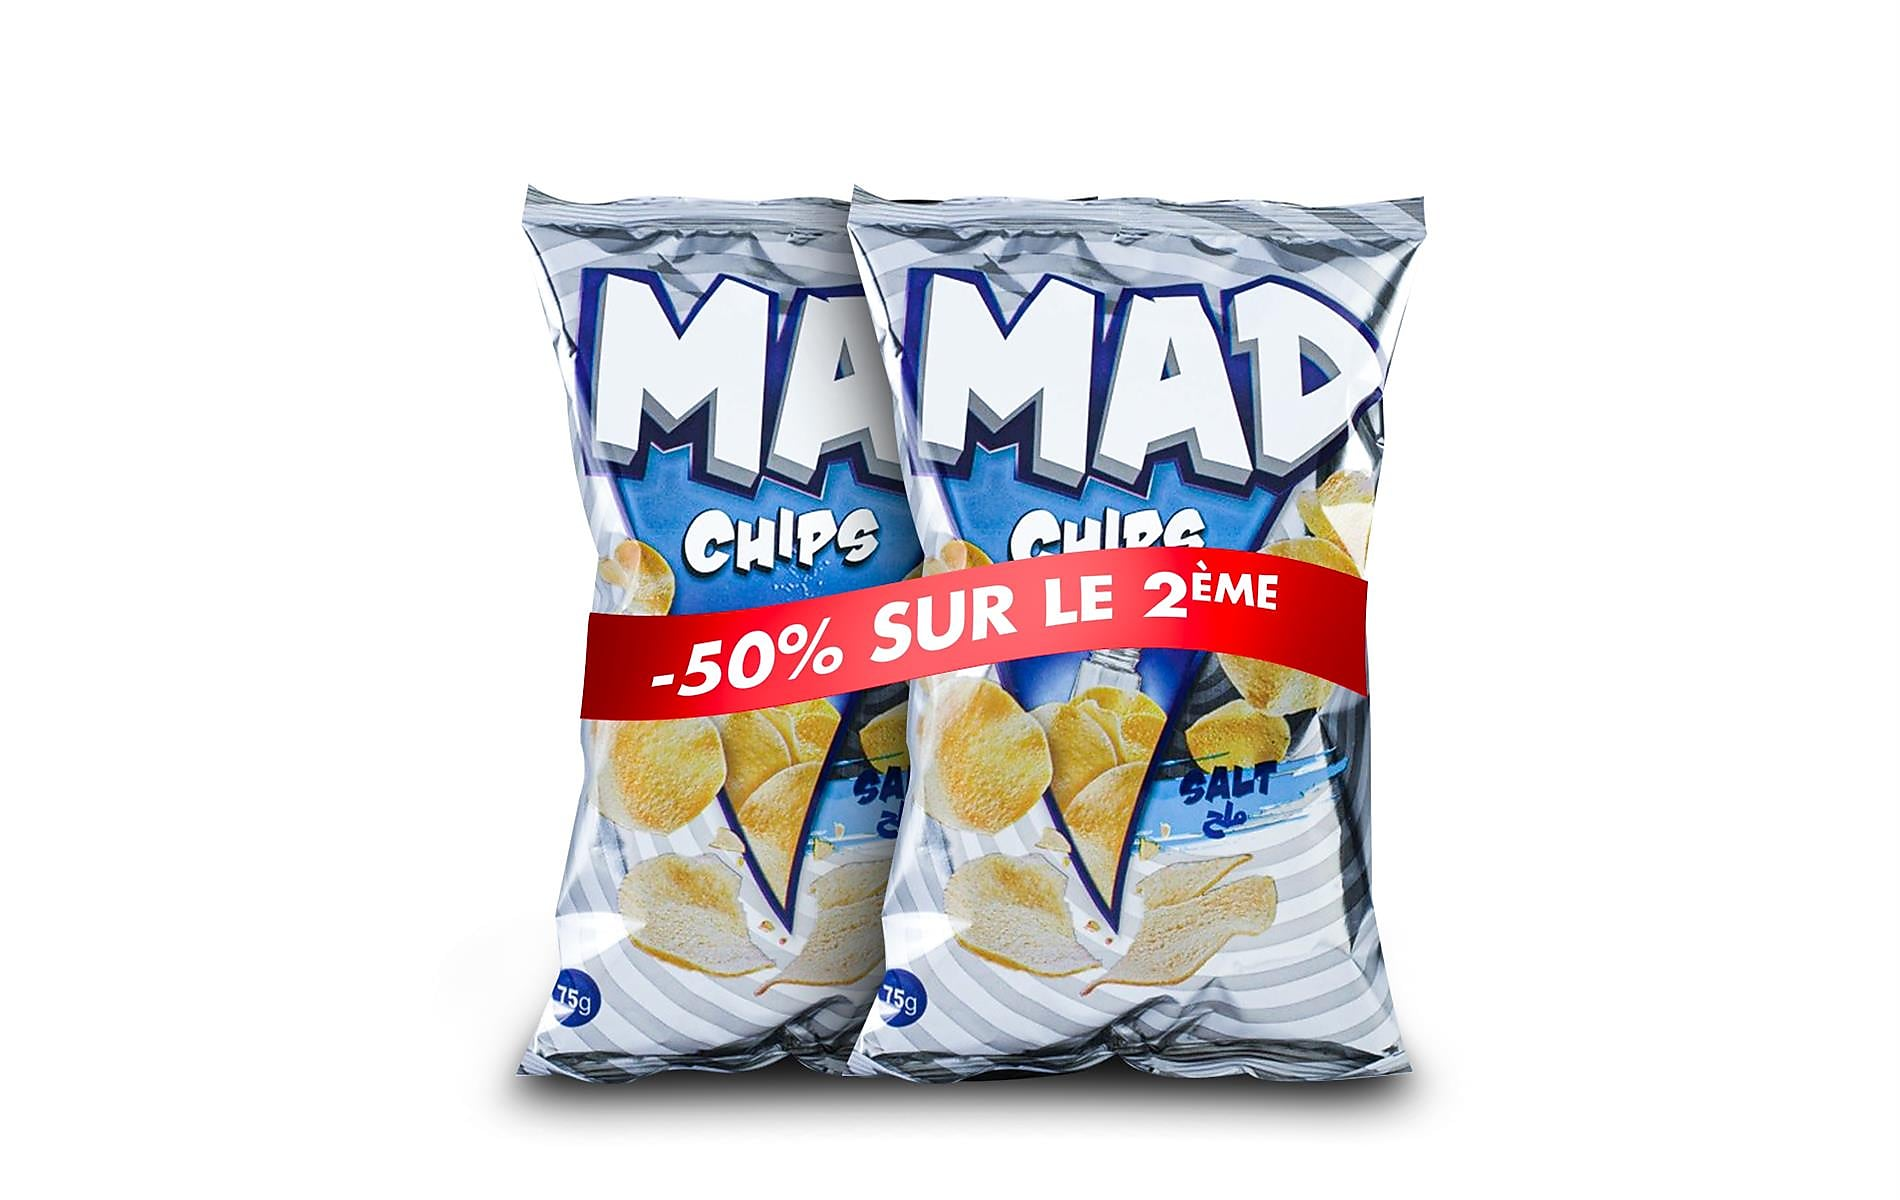 Promotion Chips: Mad Chips